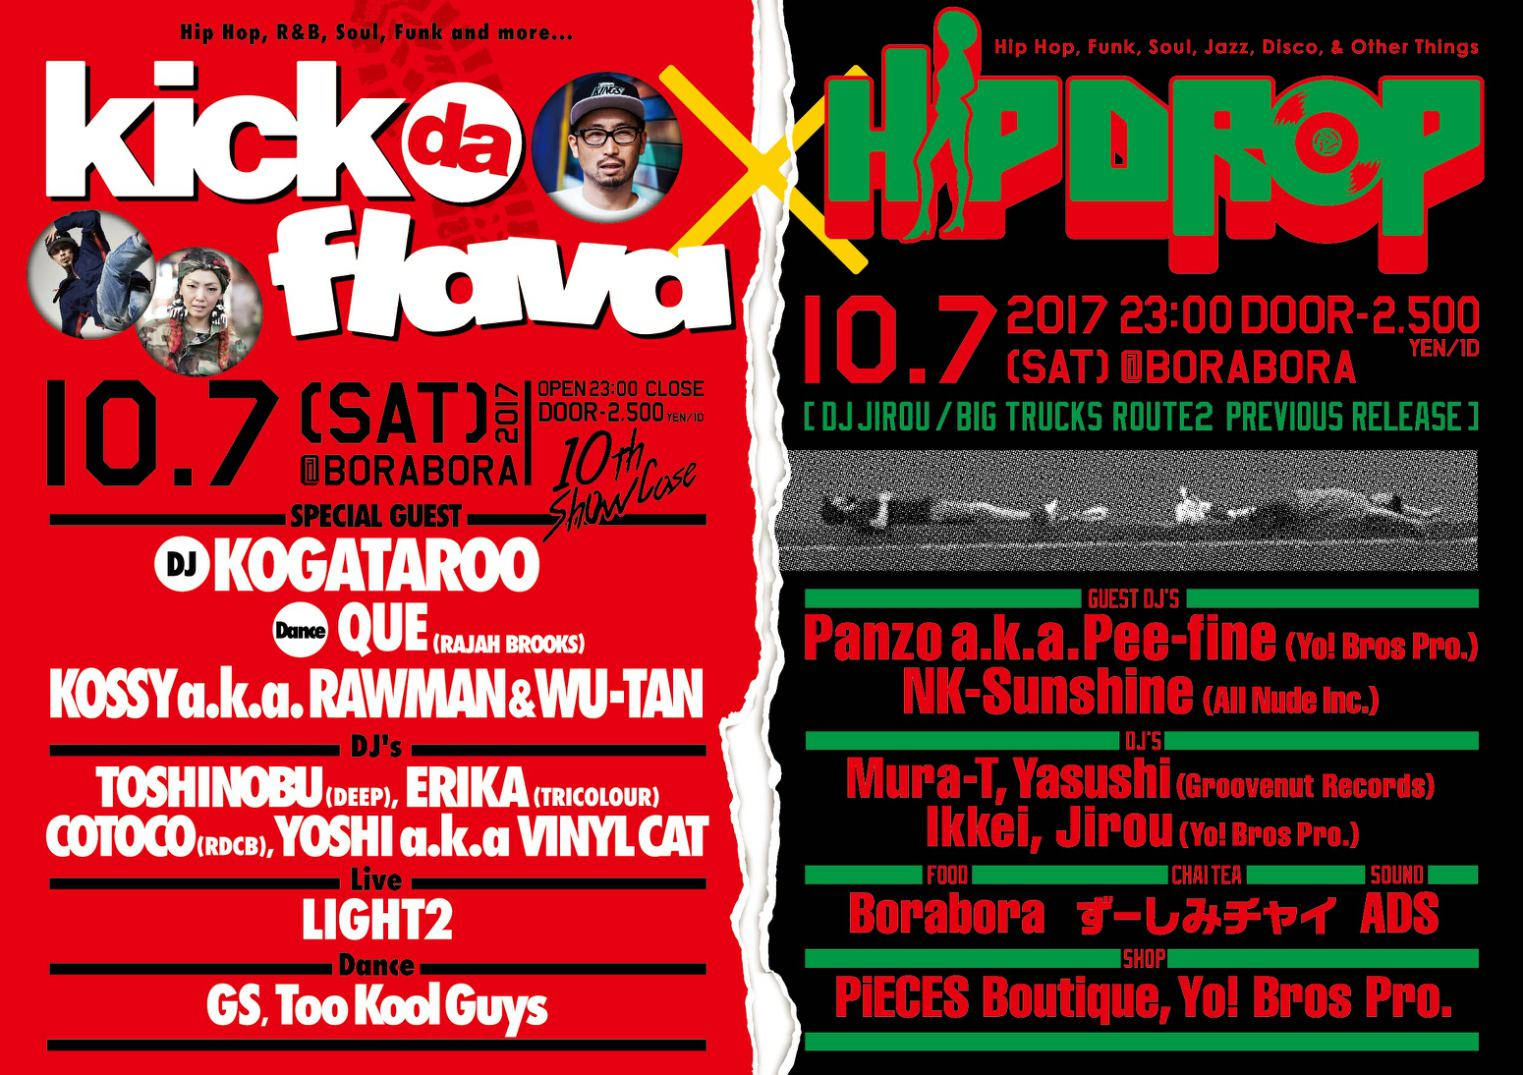 kick-da-flava-hip-drop-17-10-07-sat